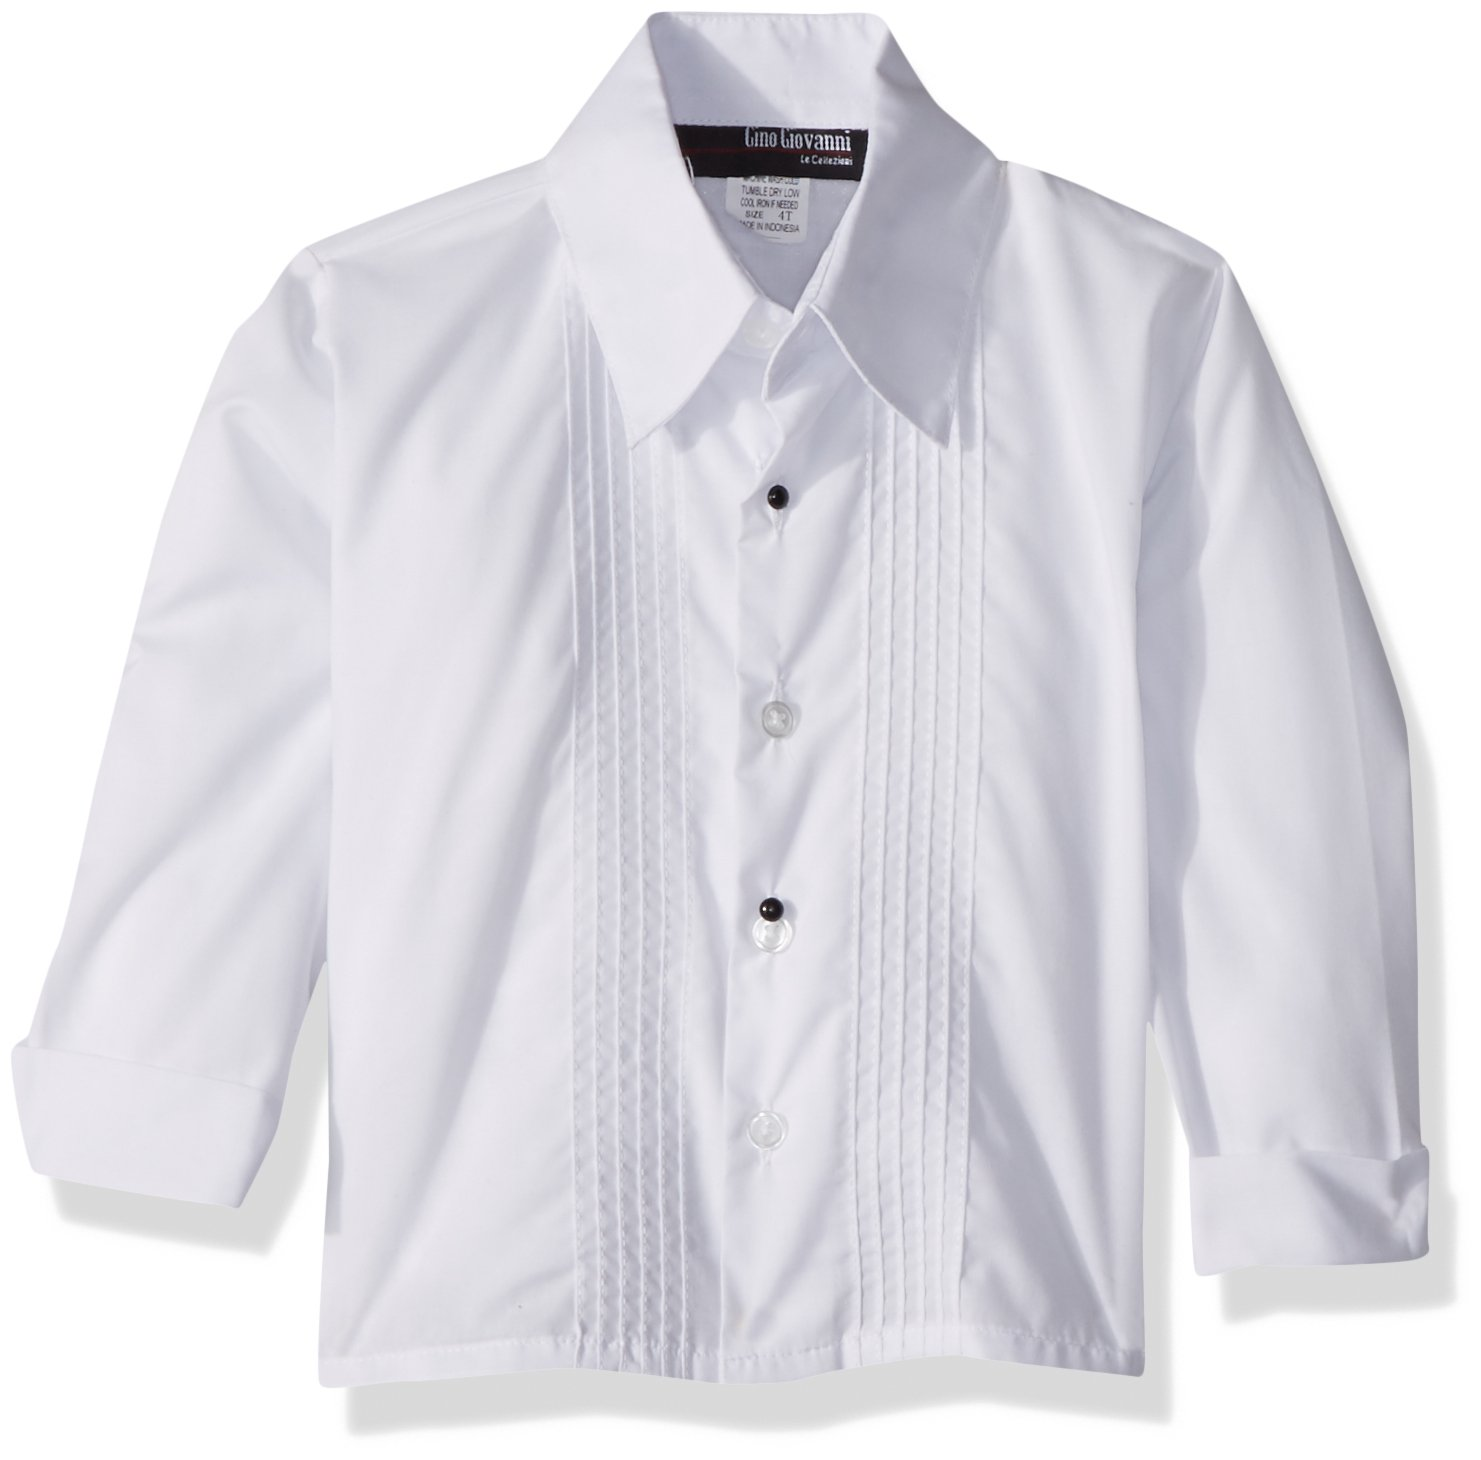 Boys Formal Long Sleeve Tuxedo Shirt G110 (Small/3-6 months, Ivory) by Gino Giovanni